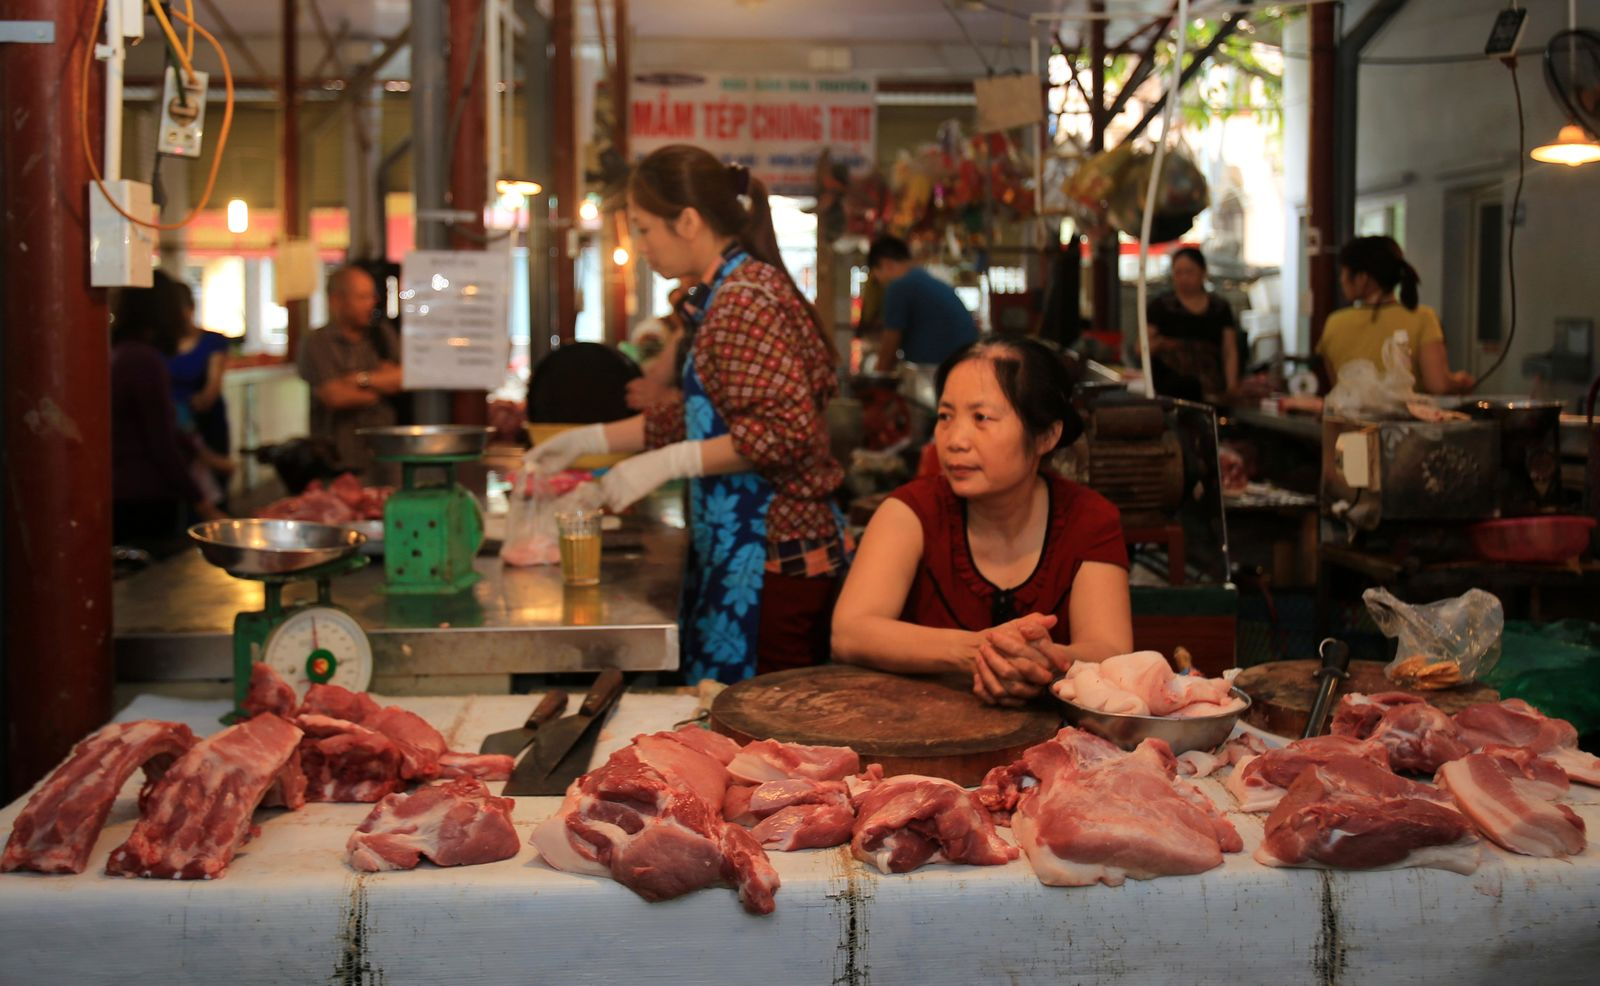 Pork is on display for sale at a market in Hanoi, Vietnam, Thursday, June, 20, 2019.{ } (AP Photo/Hieu Dinh)